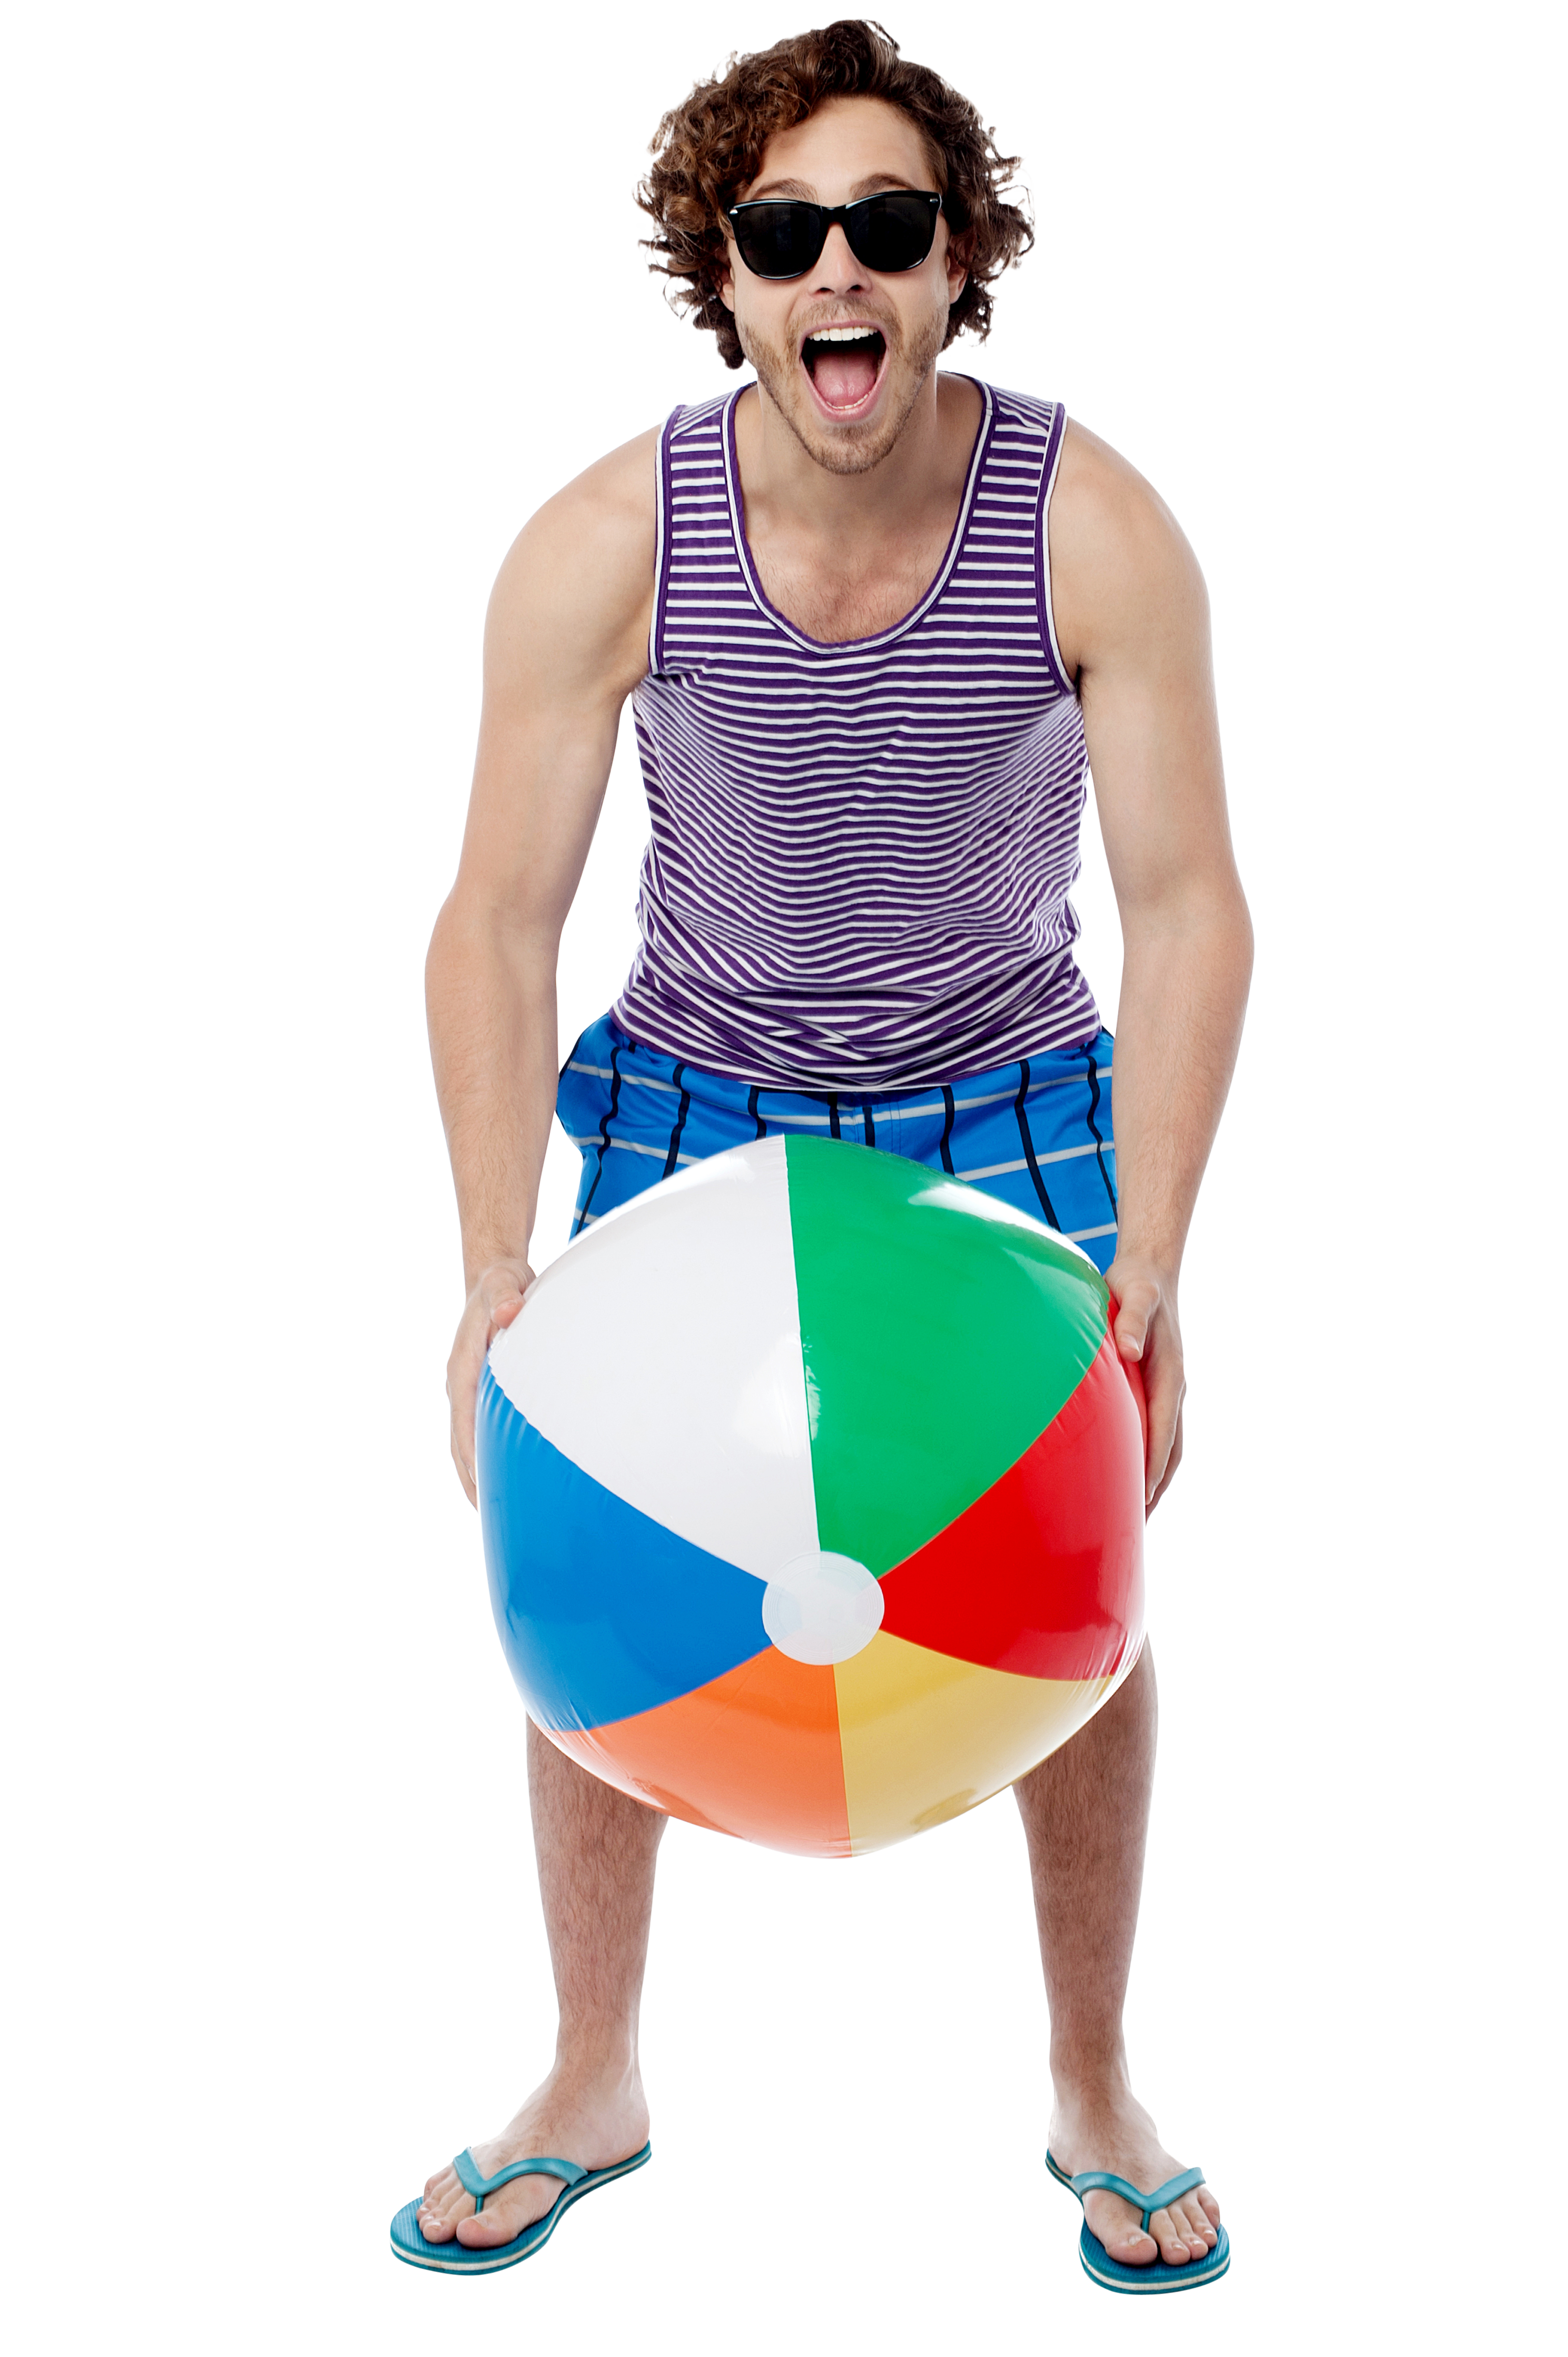 Men With Beach Ball PNG Image